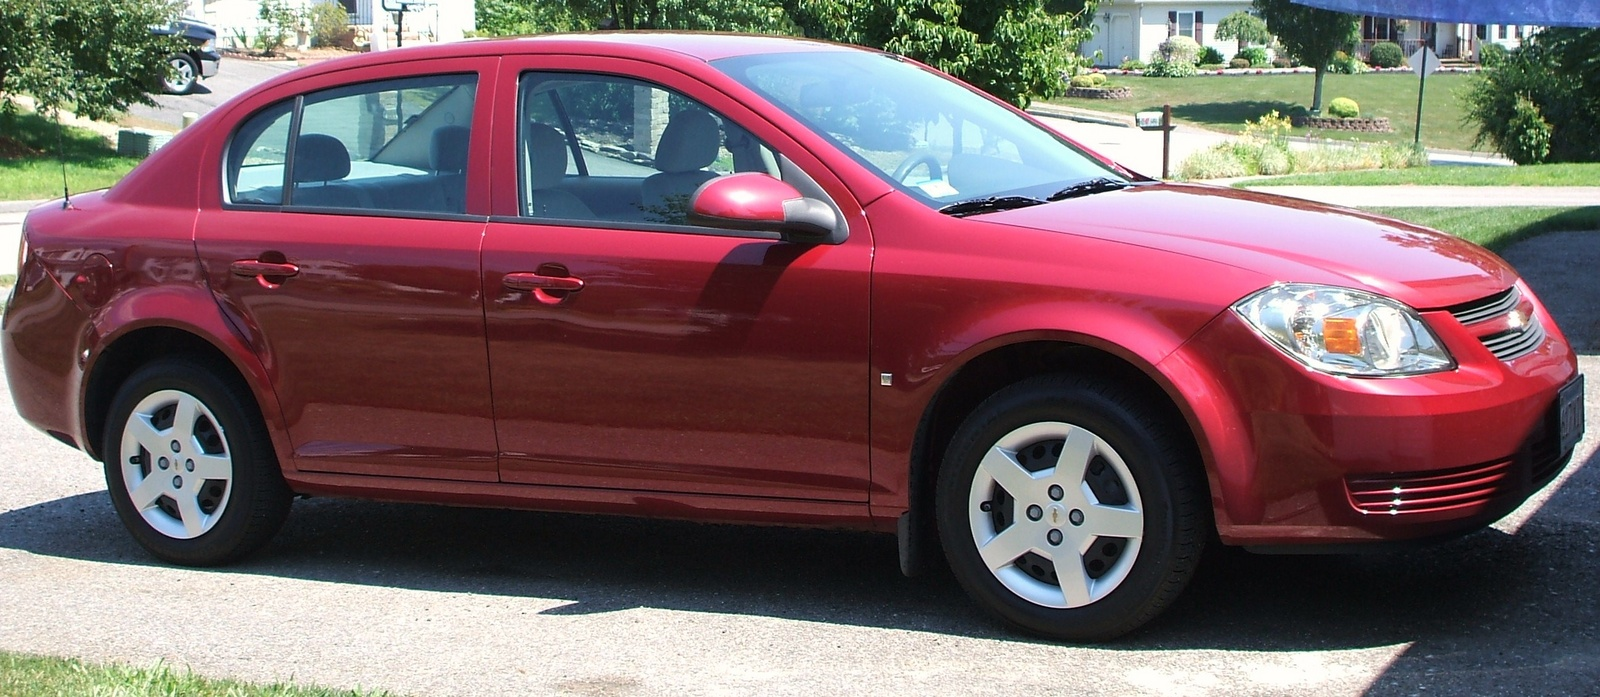 2008 chevrolet cobalt pictures cargurus. Cars Review. Best American Auto & Cars Review